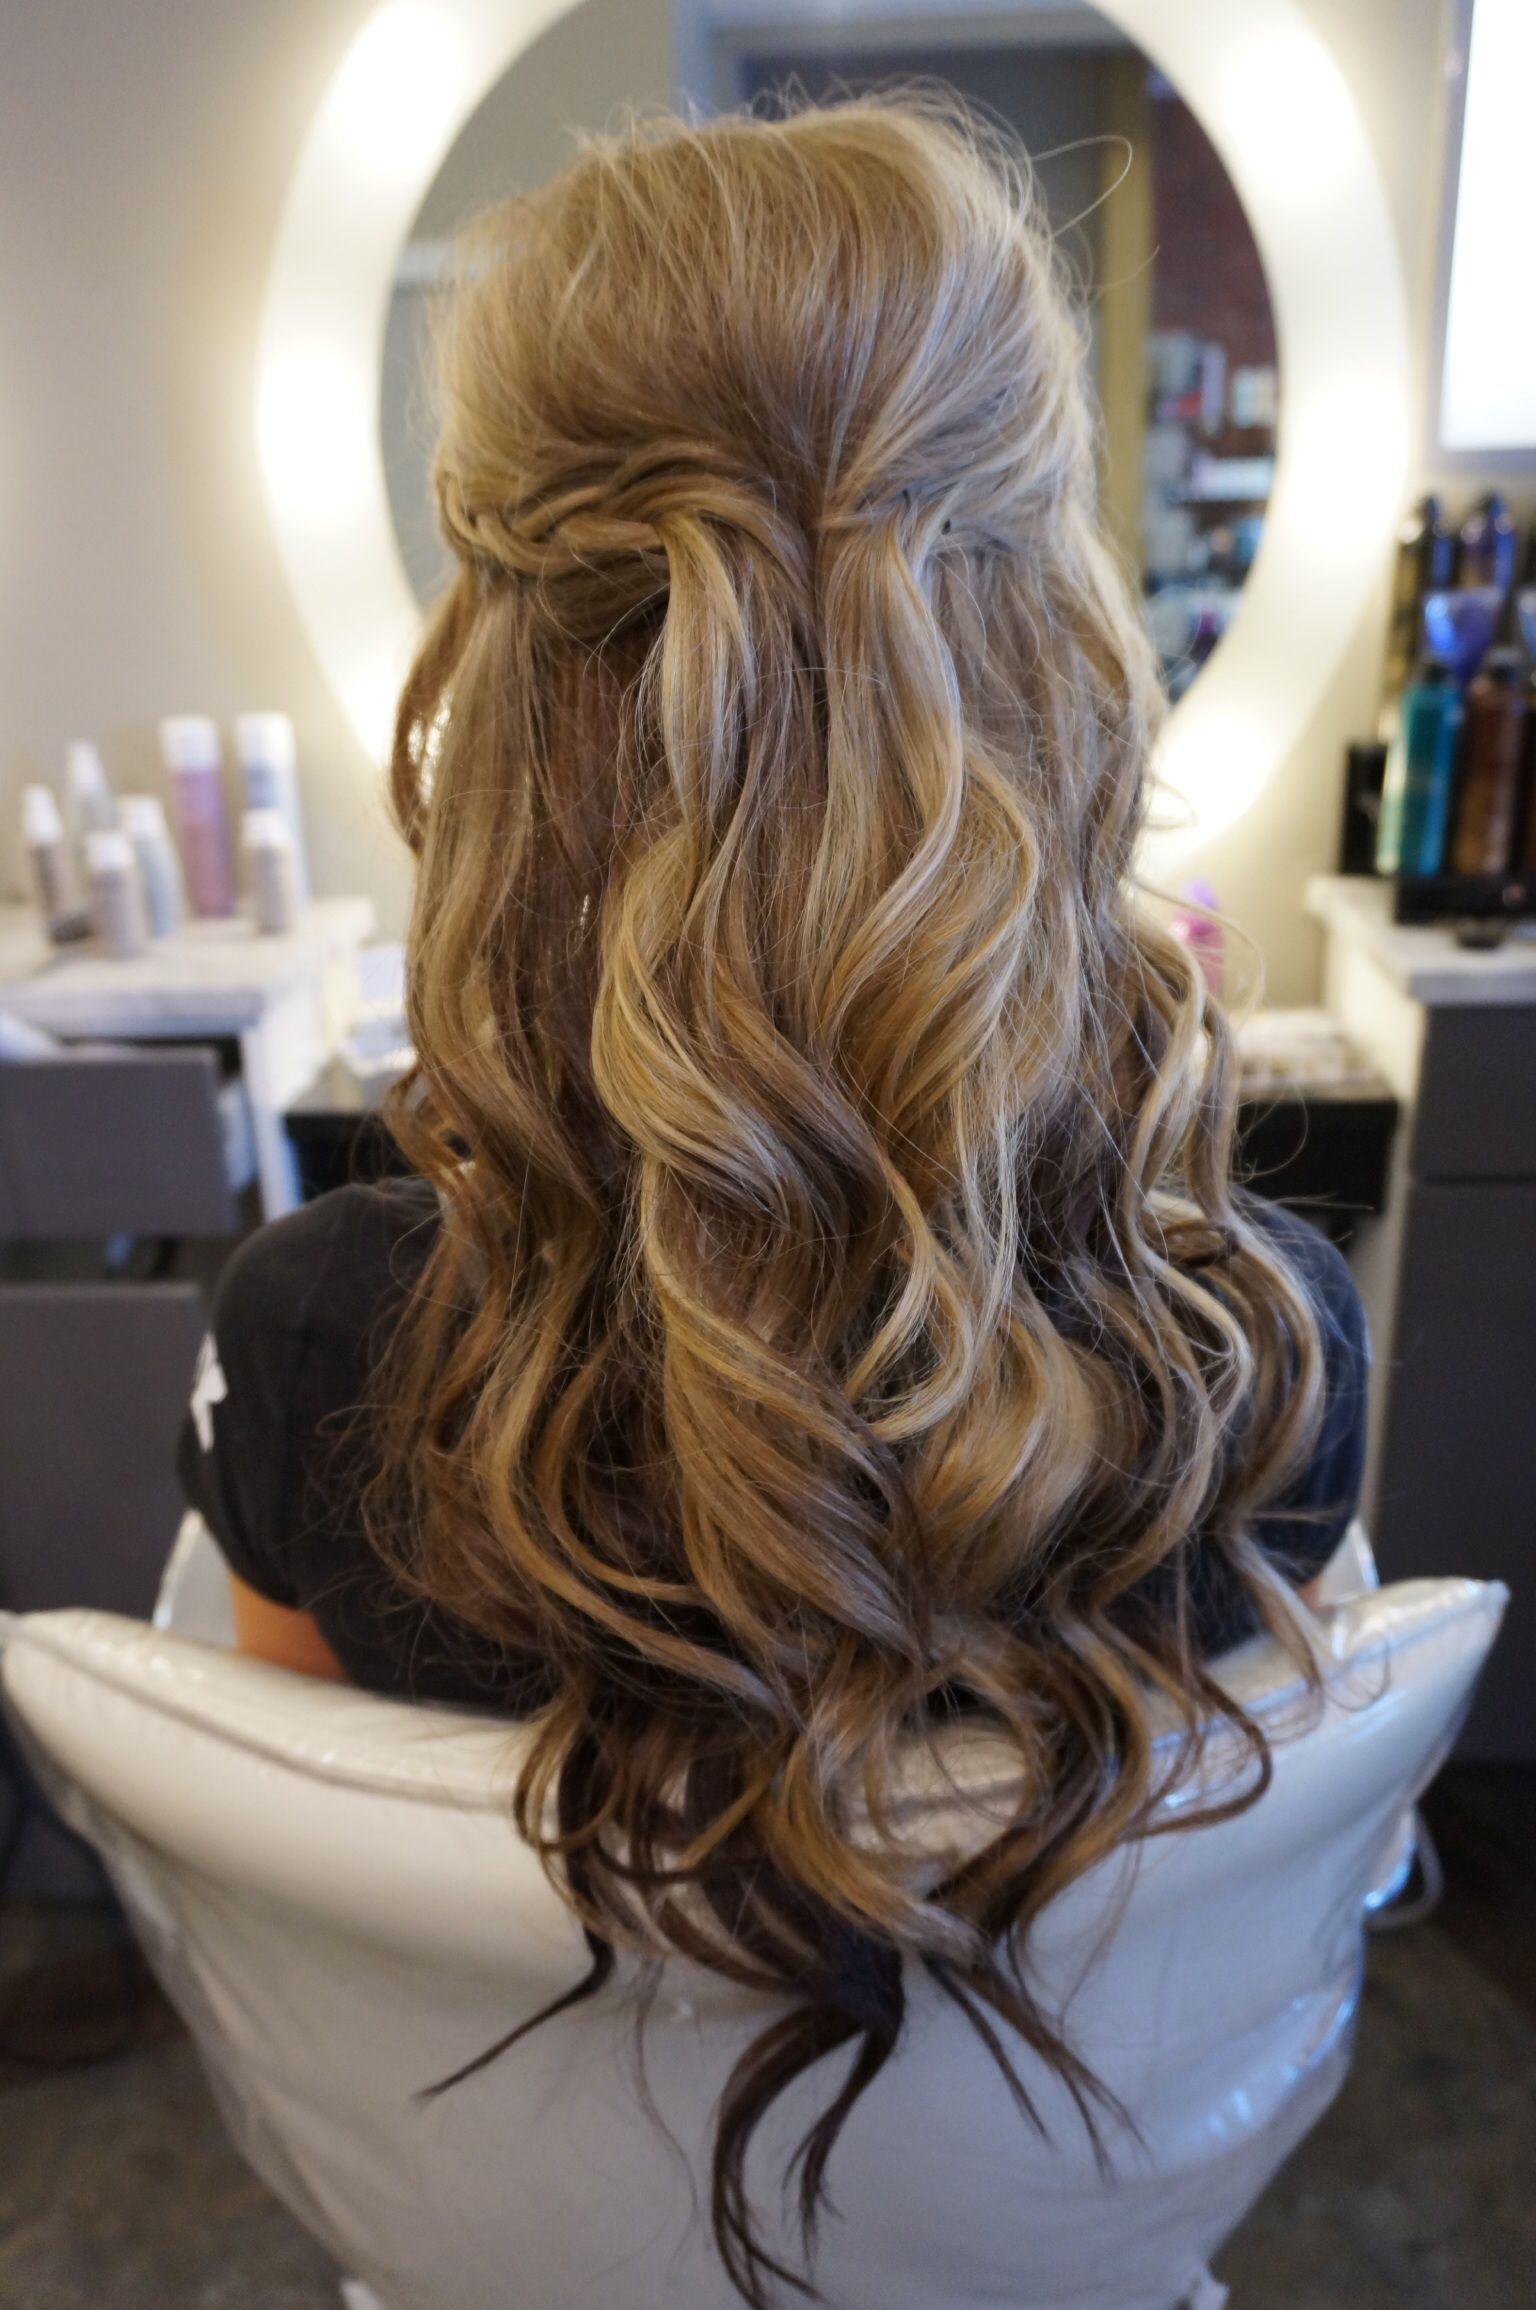 long hair with loose curls perfect half up half down style! follow